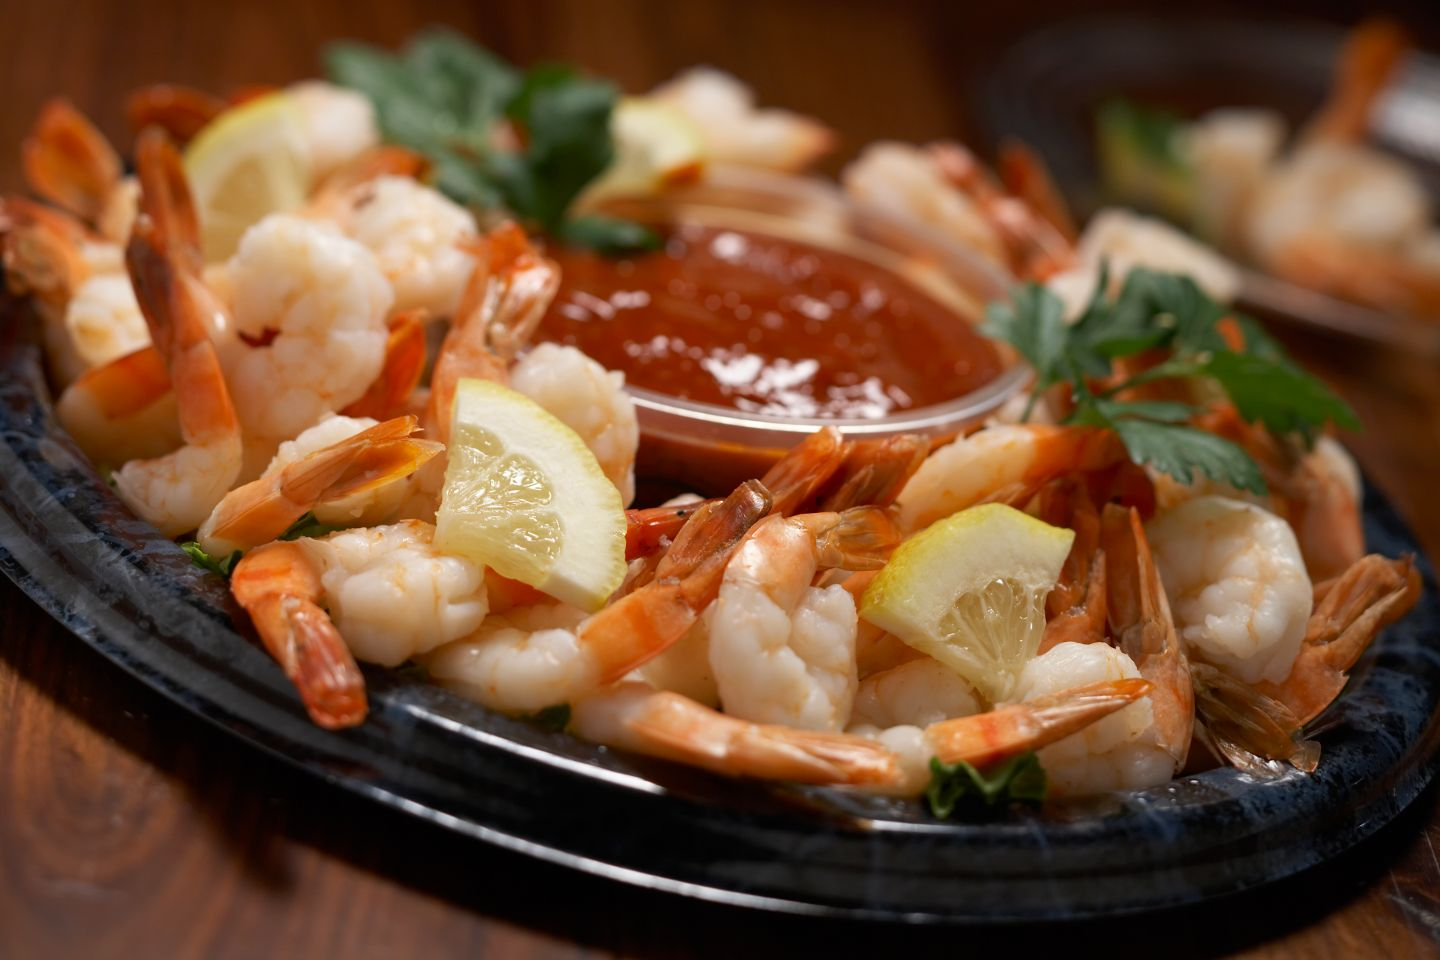 Shrimp Tray from Catering